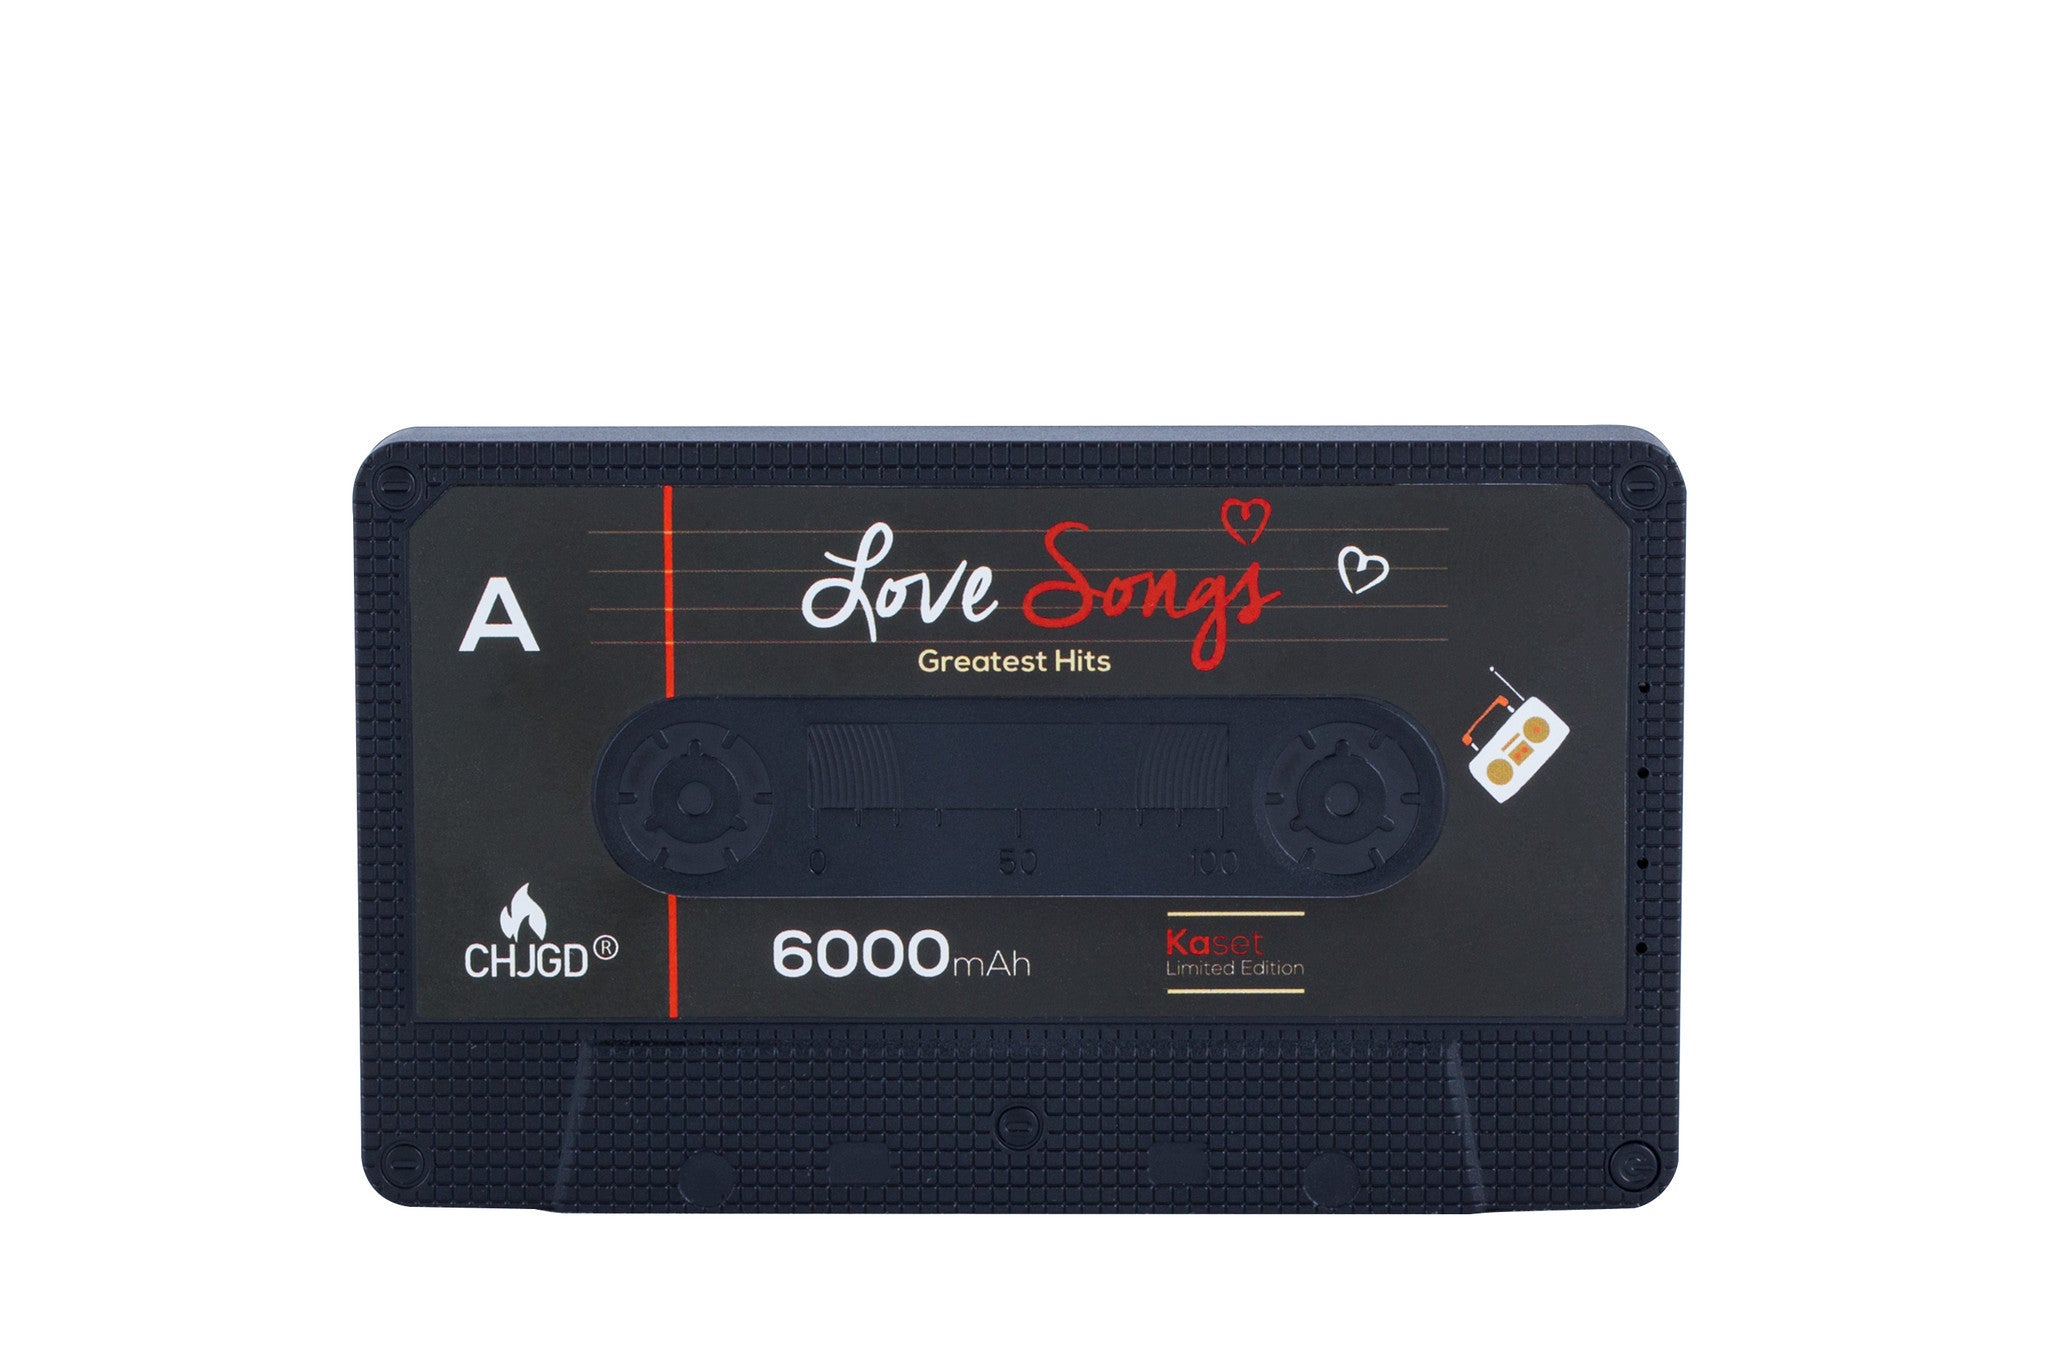 CHJGD® Kaset 6,000 mAh Powerbank - Love Songs